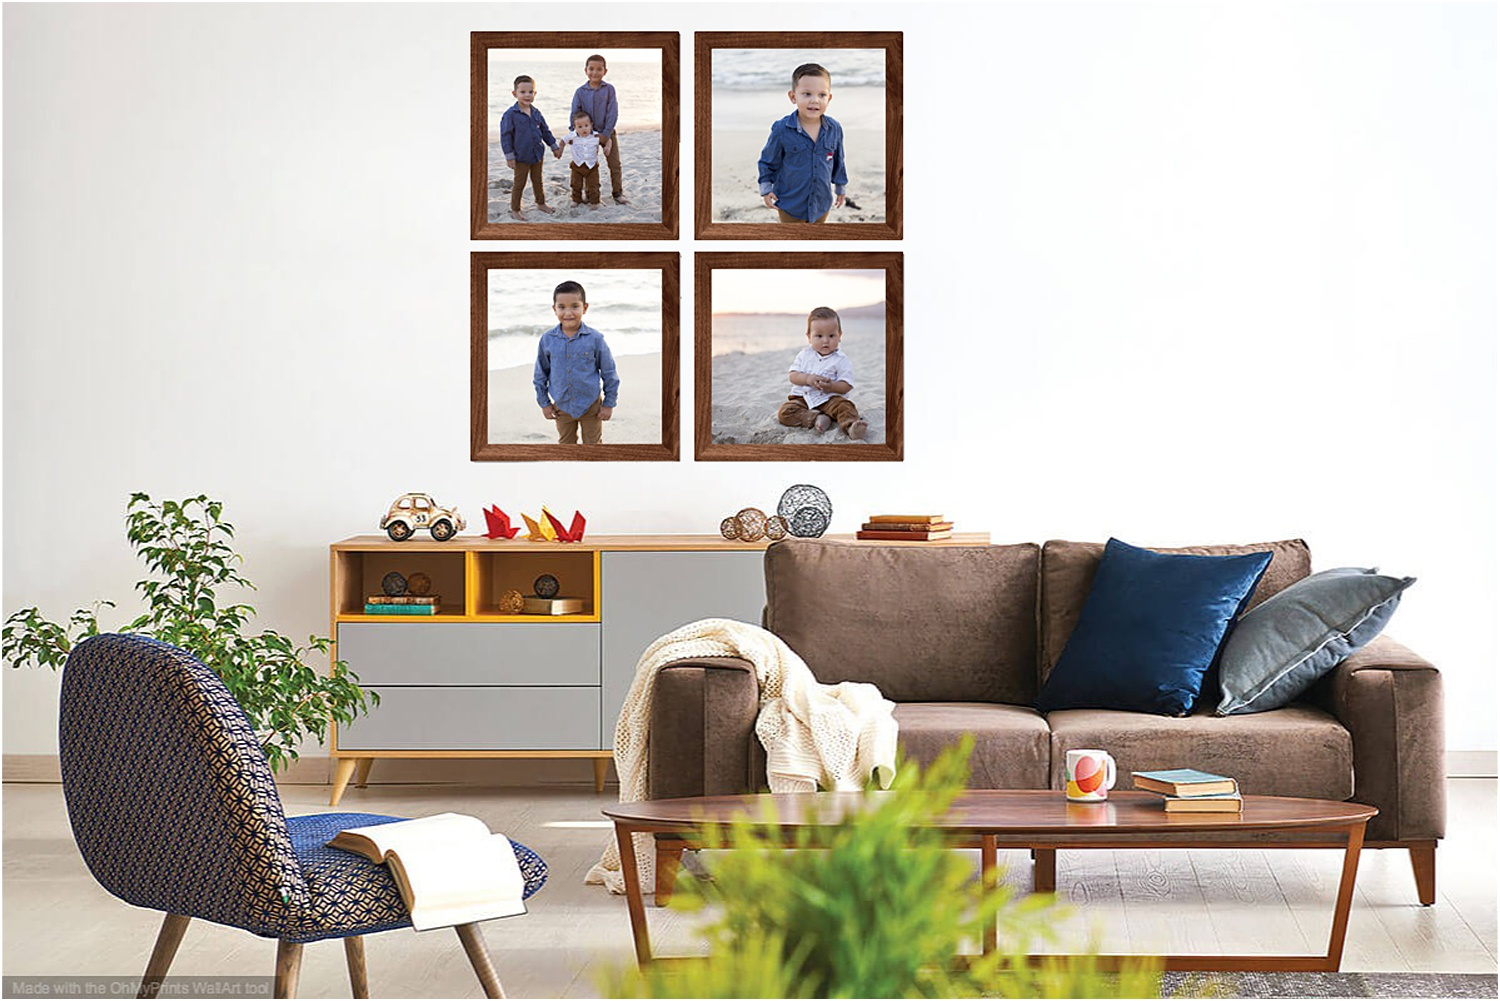 Square framed photos are perfect for symmetrical gallery walls.